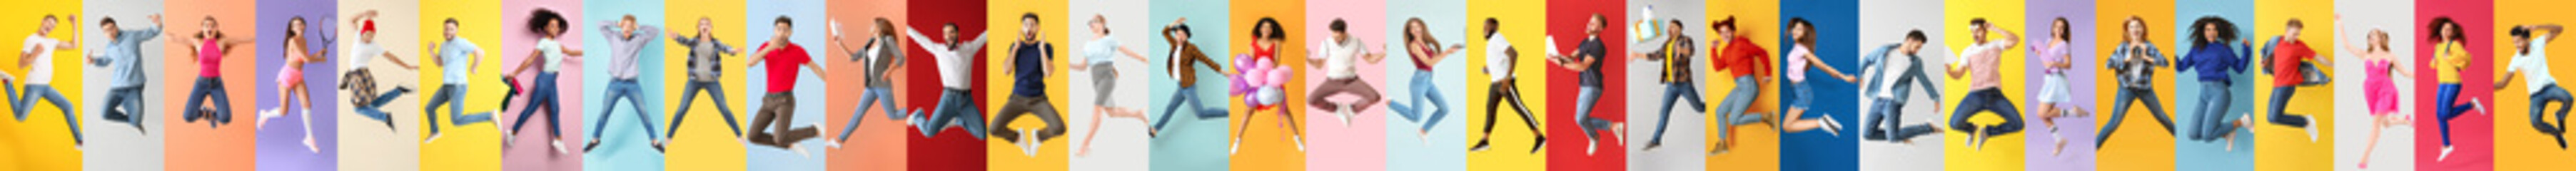 Collage of photos with different jumping people